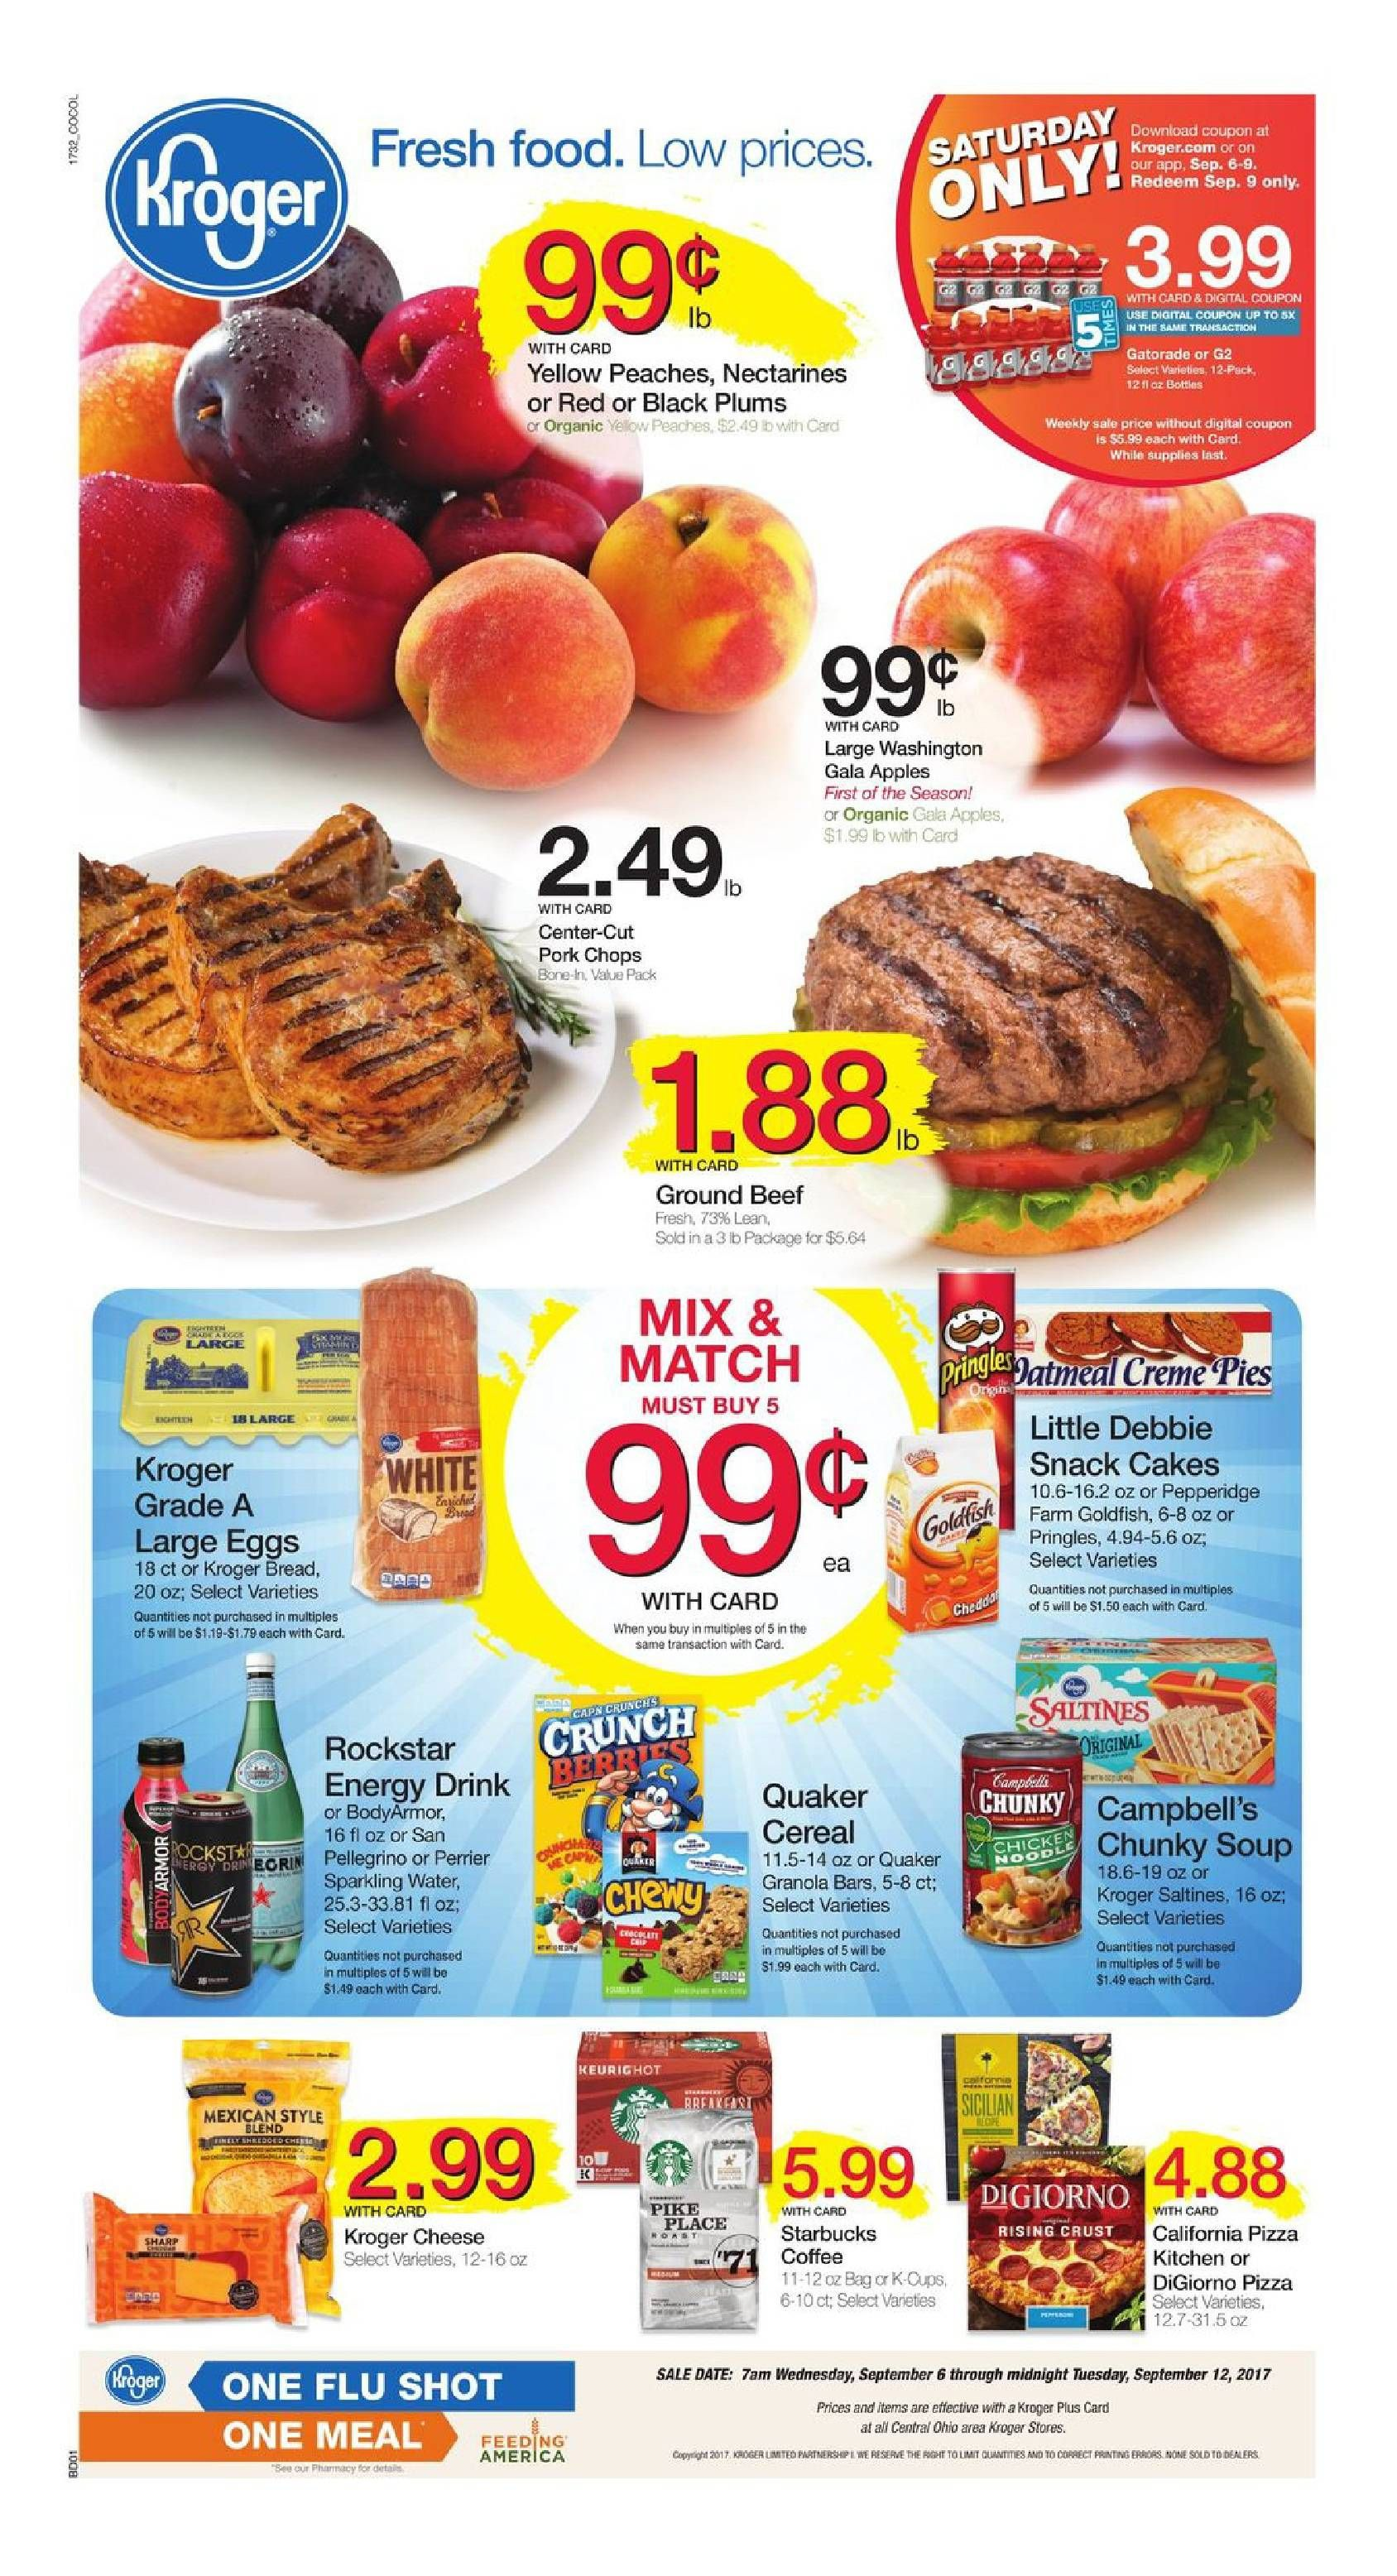 Search Latest Kroger Weekly Ad Here And Find Digital Coupons Free Friday Download Recipe Menu Deli Bakery Latest Promotions An Food Menu Kroger Fresh Food